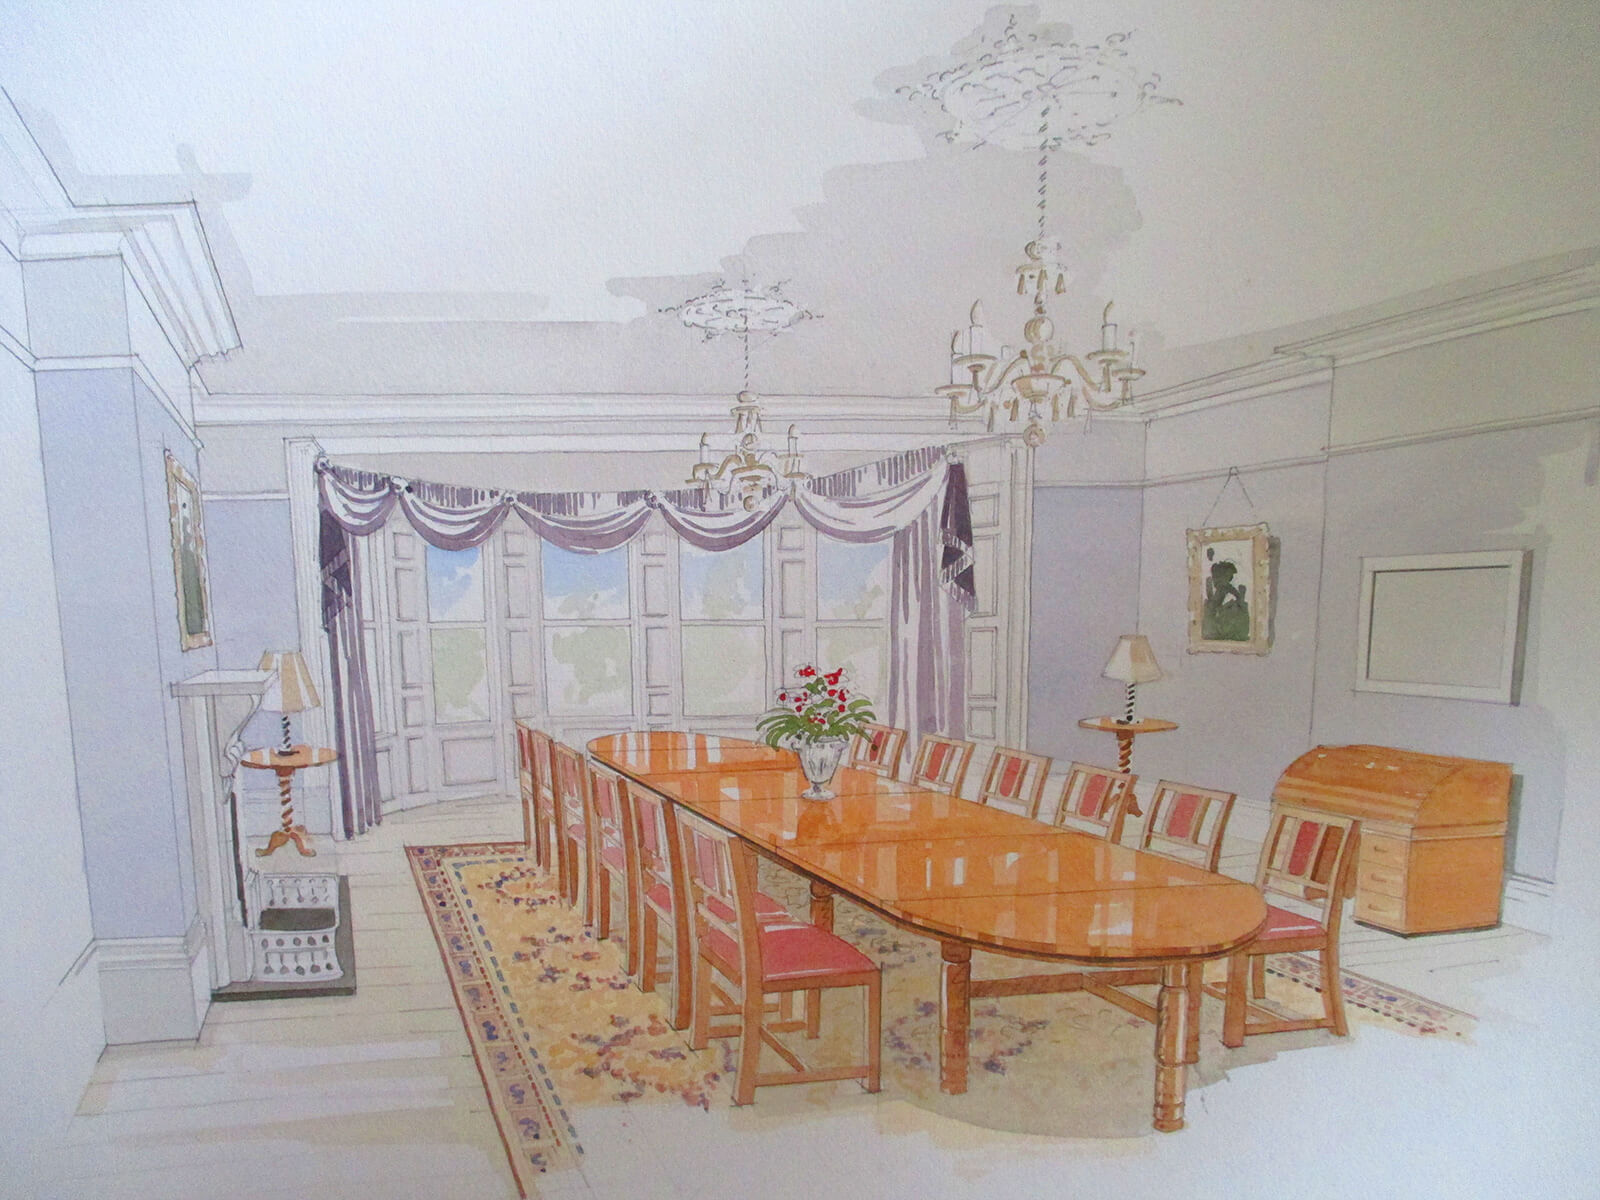 Watercolour created to demonstrate interior of conference suite, The Mansion House, Clifton, Bristol. - i.d.space